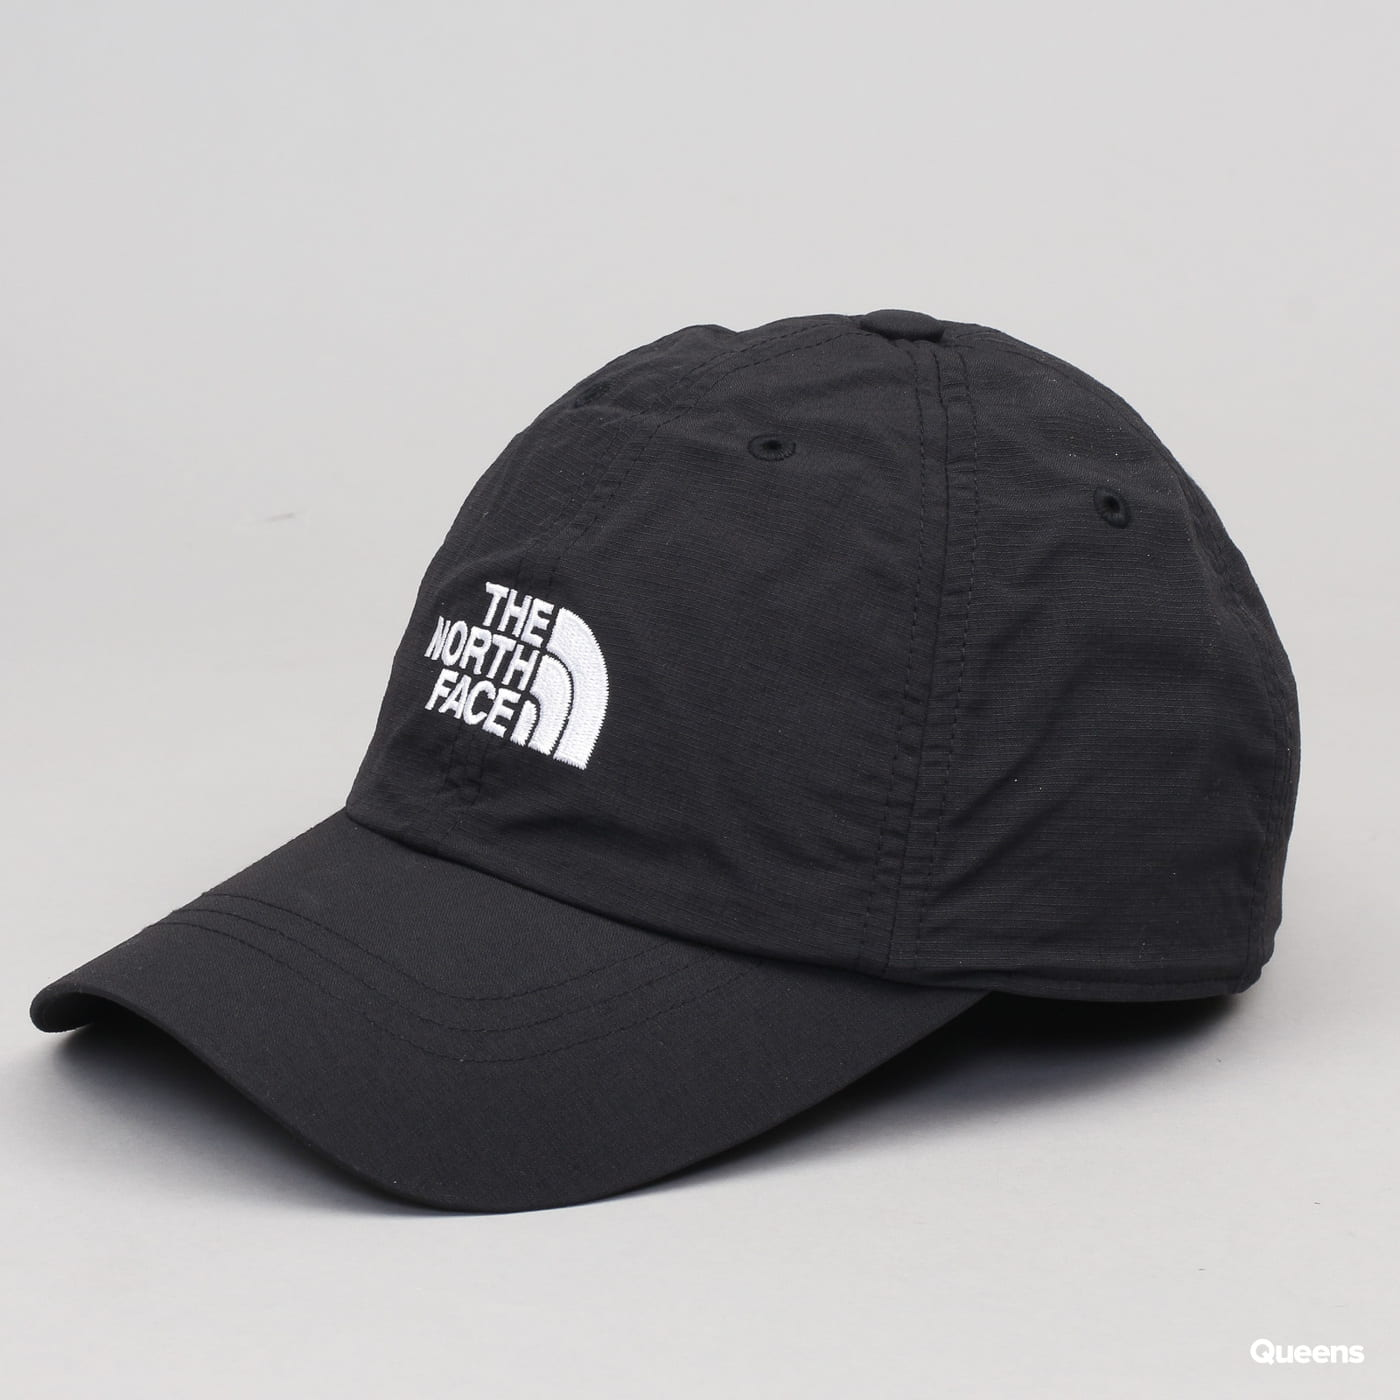 The North Face Horizon Ball Cap schwarz